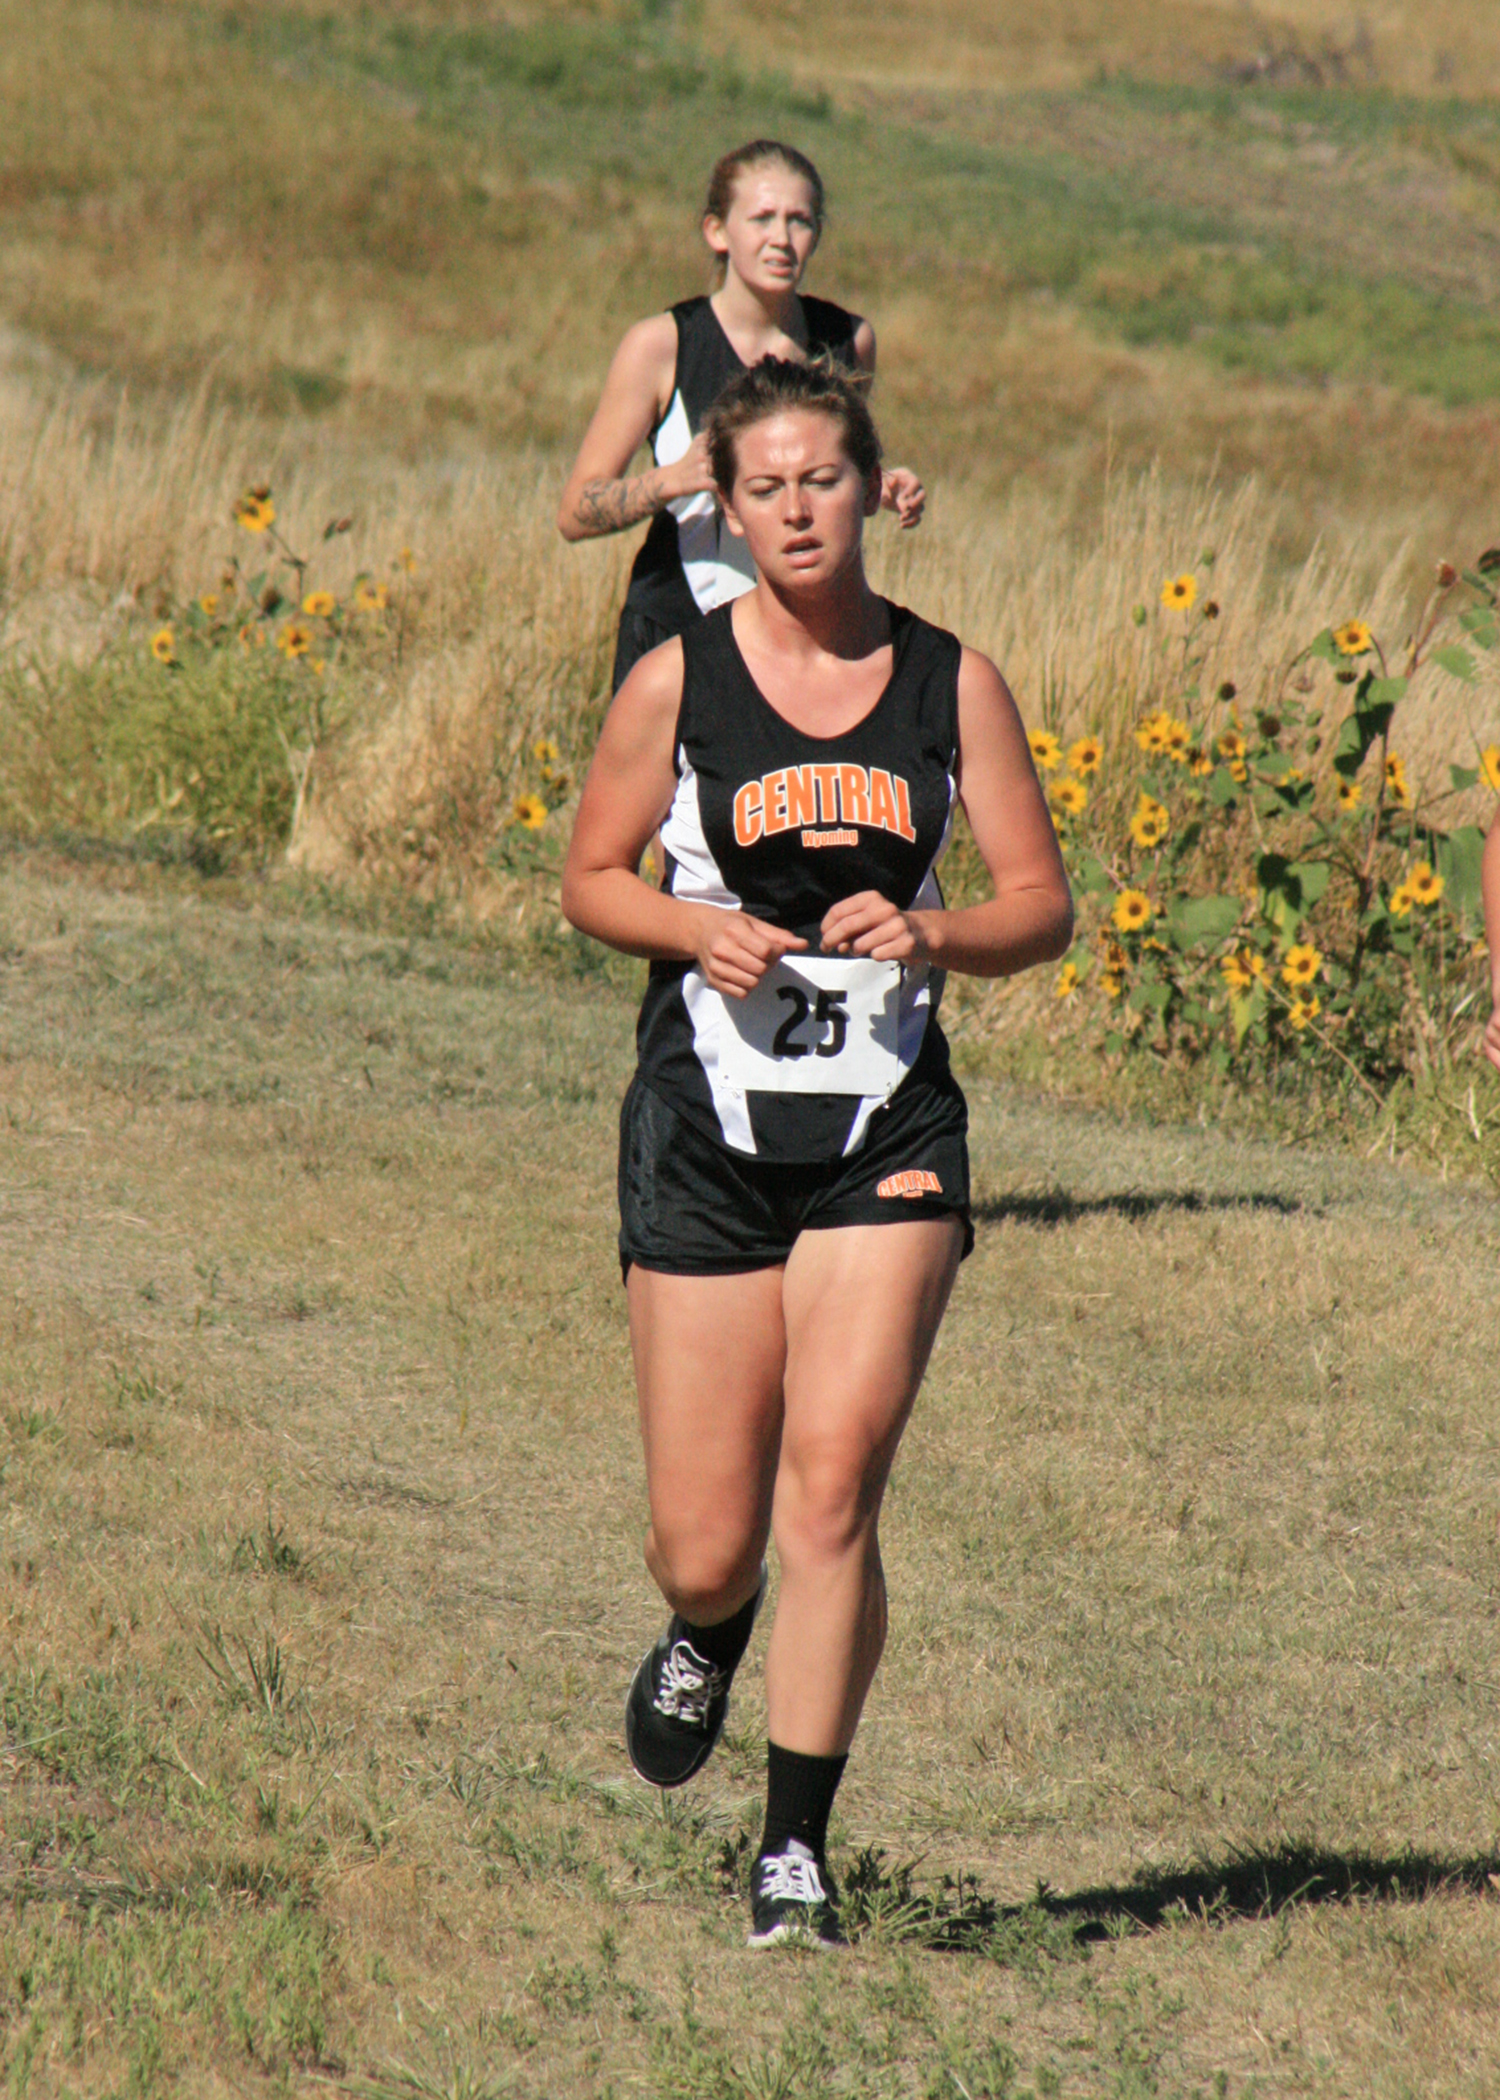 CWC cross country runner Rebeka runs at meet